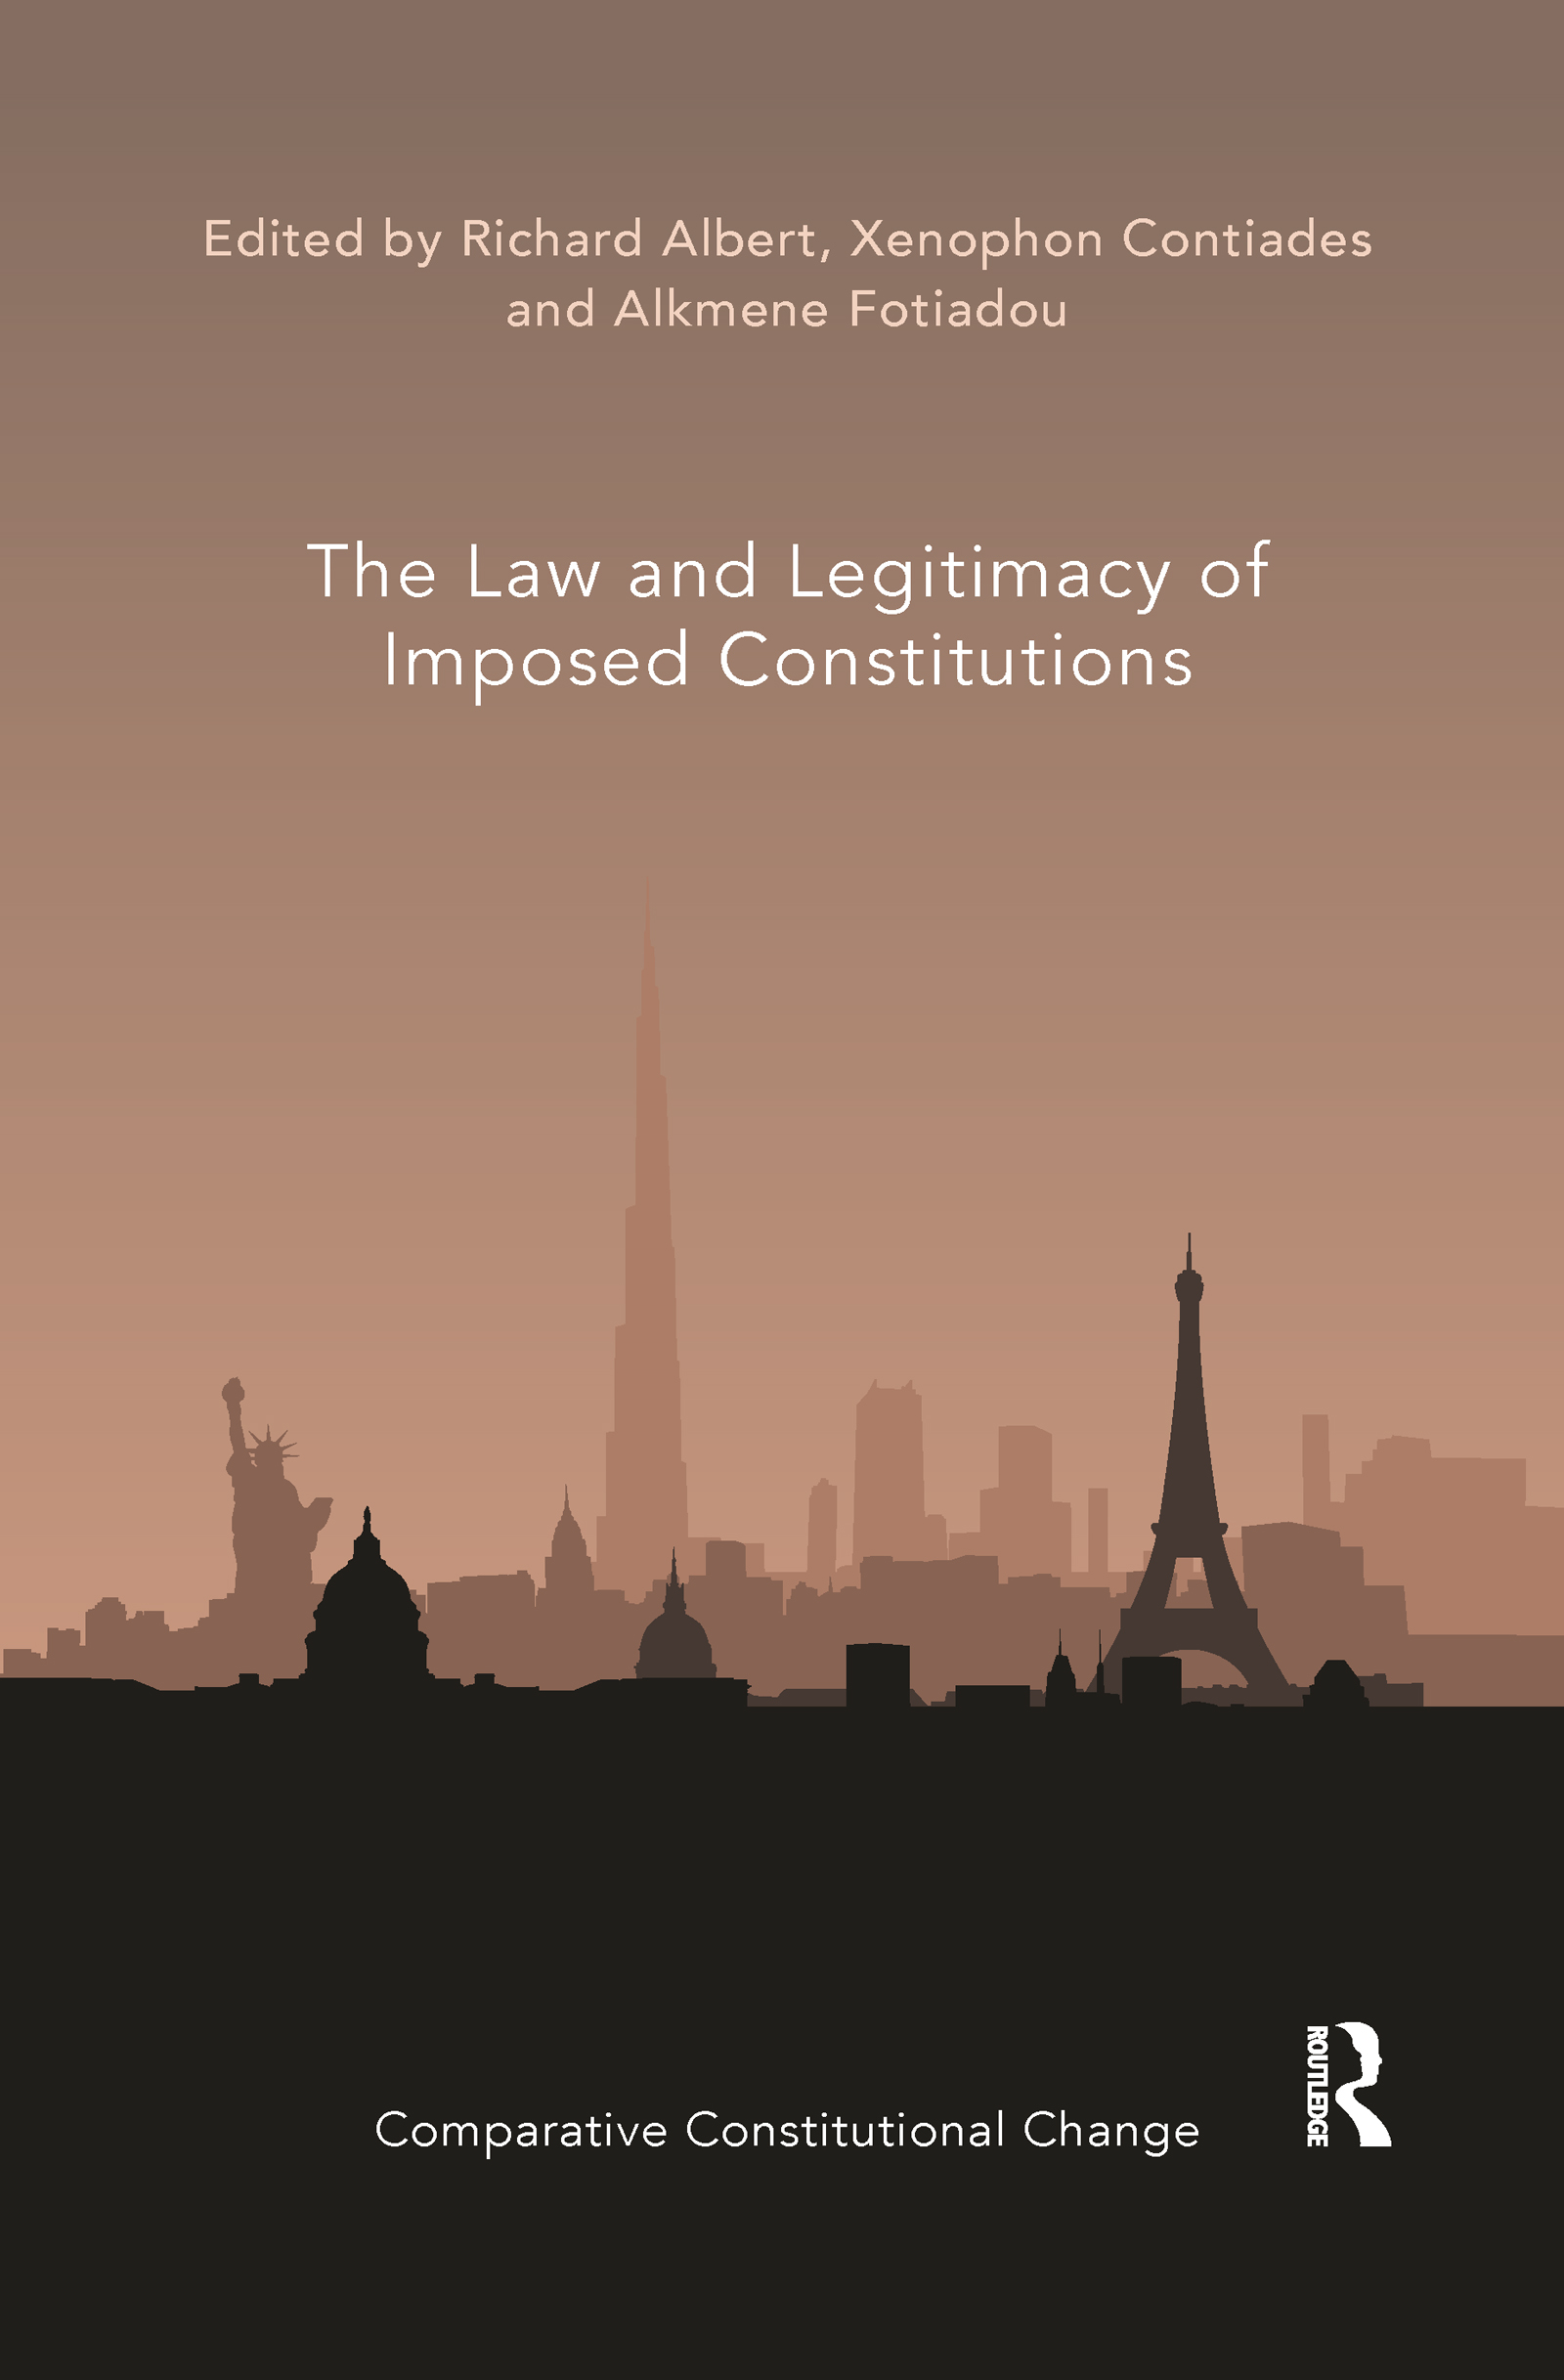 The Law and Legitimacy of Imposed Constitutions